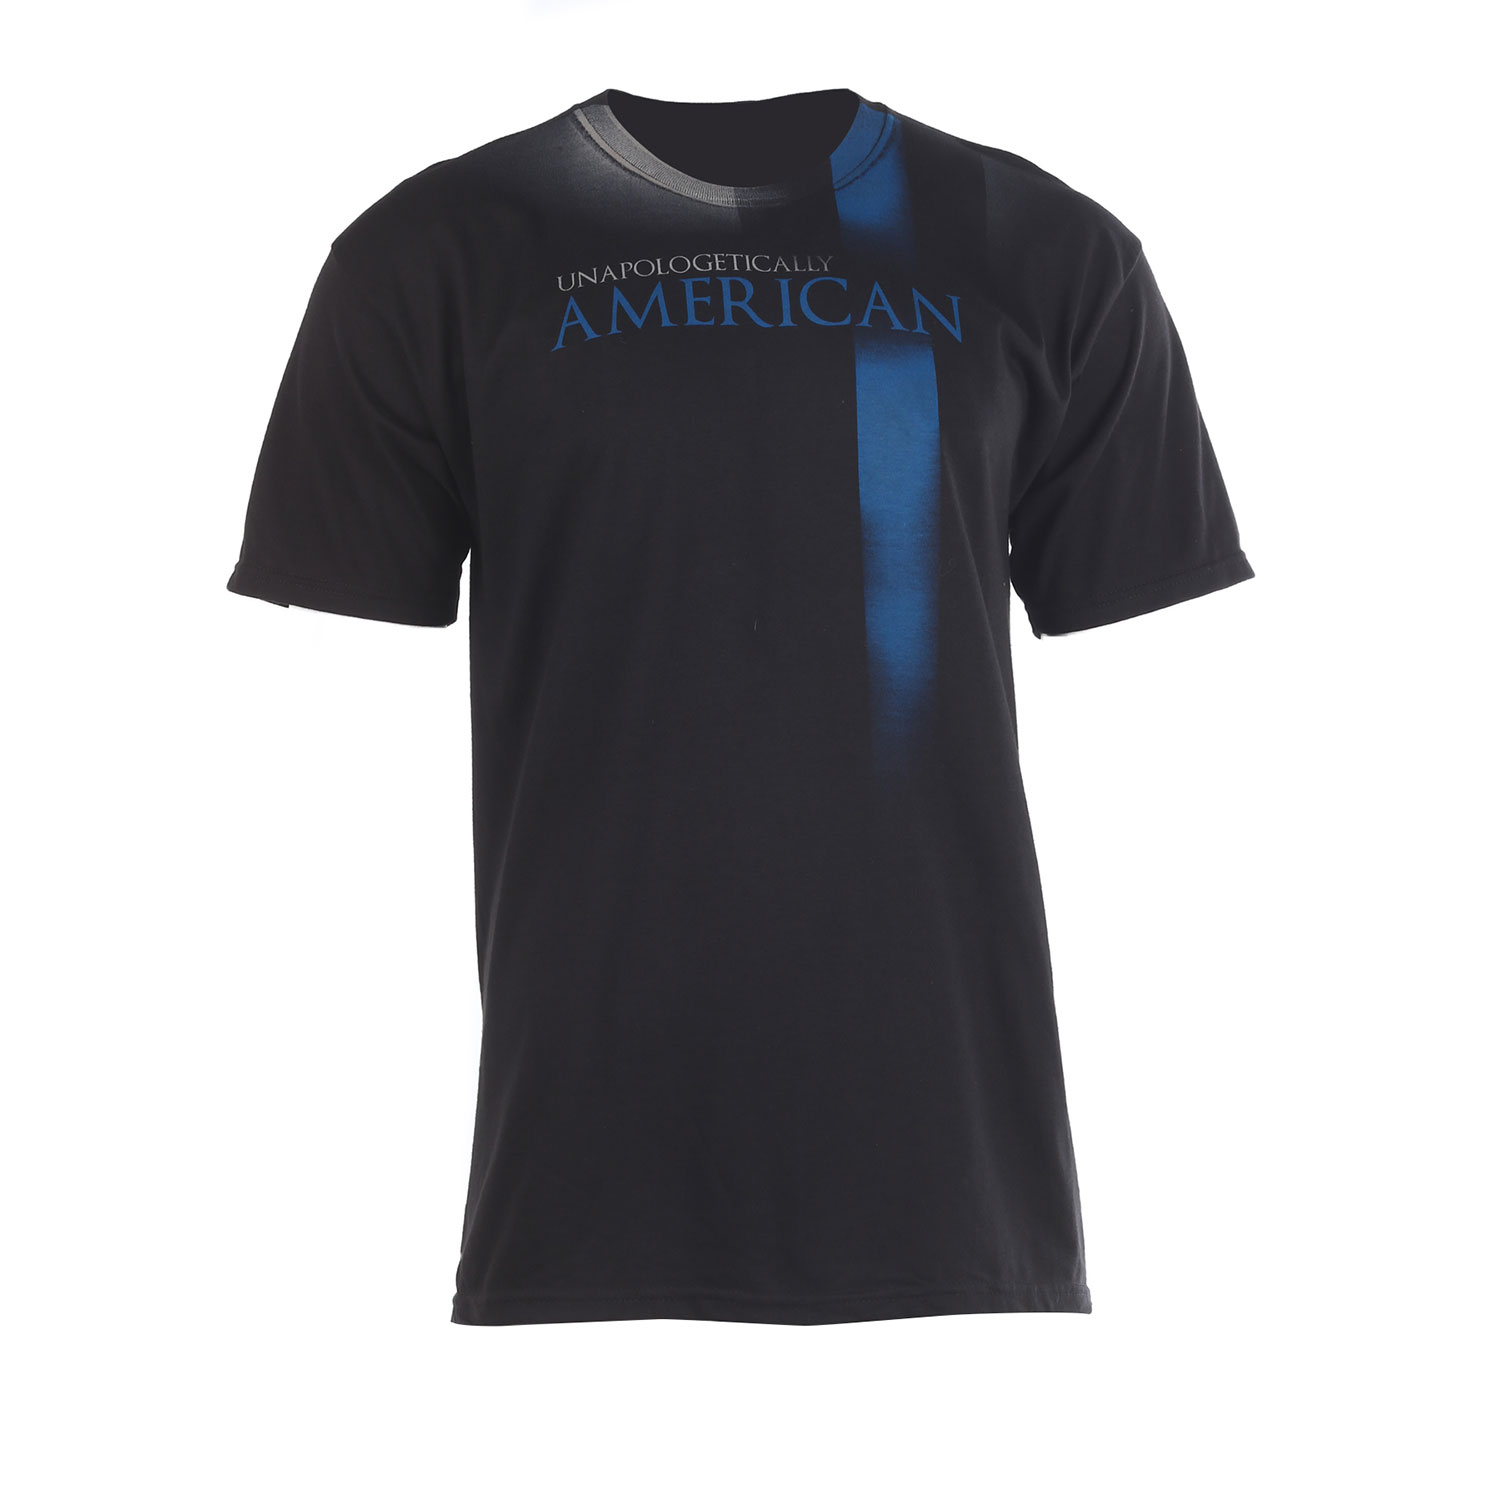 ranger up thin blue line t shirt. Black Bedroom Furniture Sets. Home Design Ideas